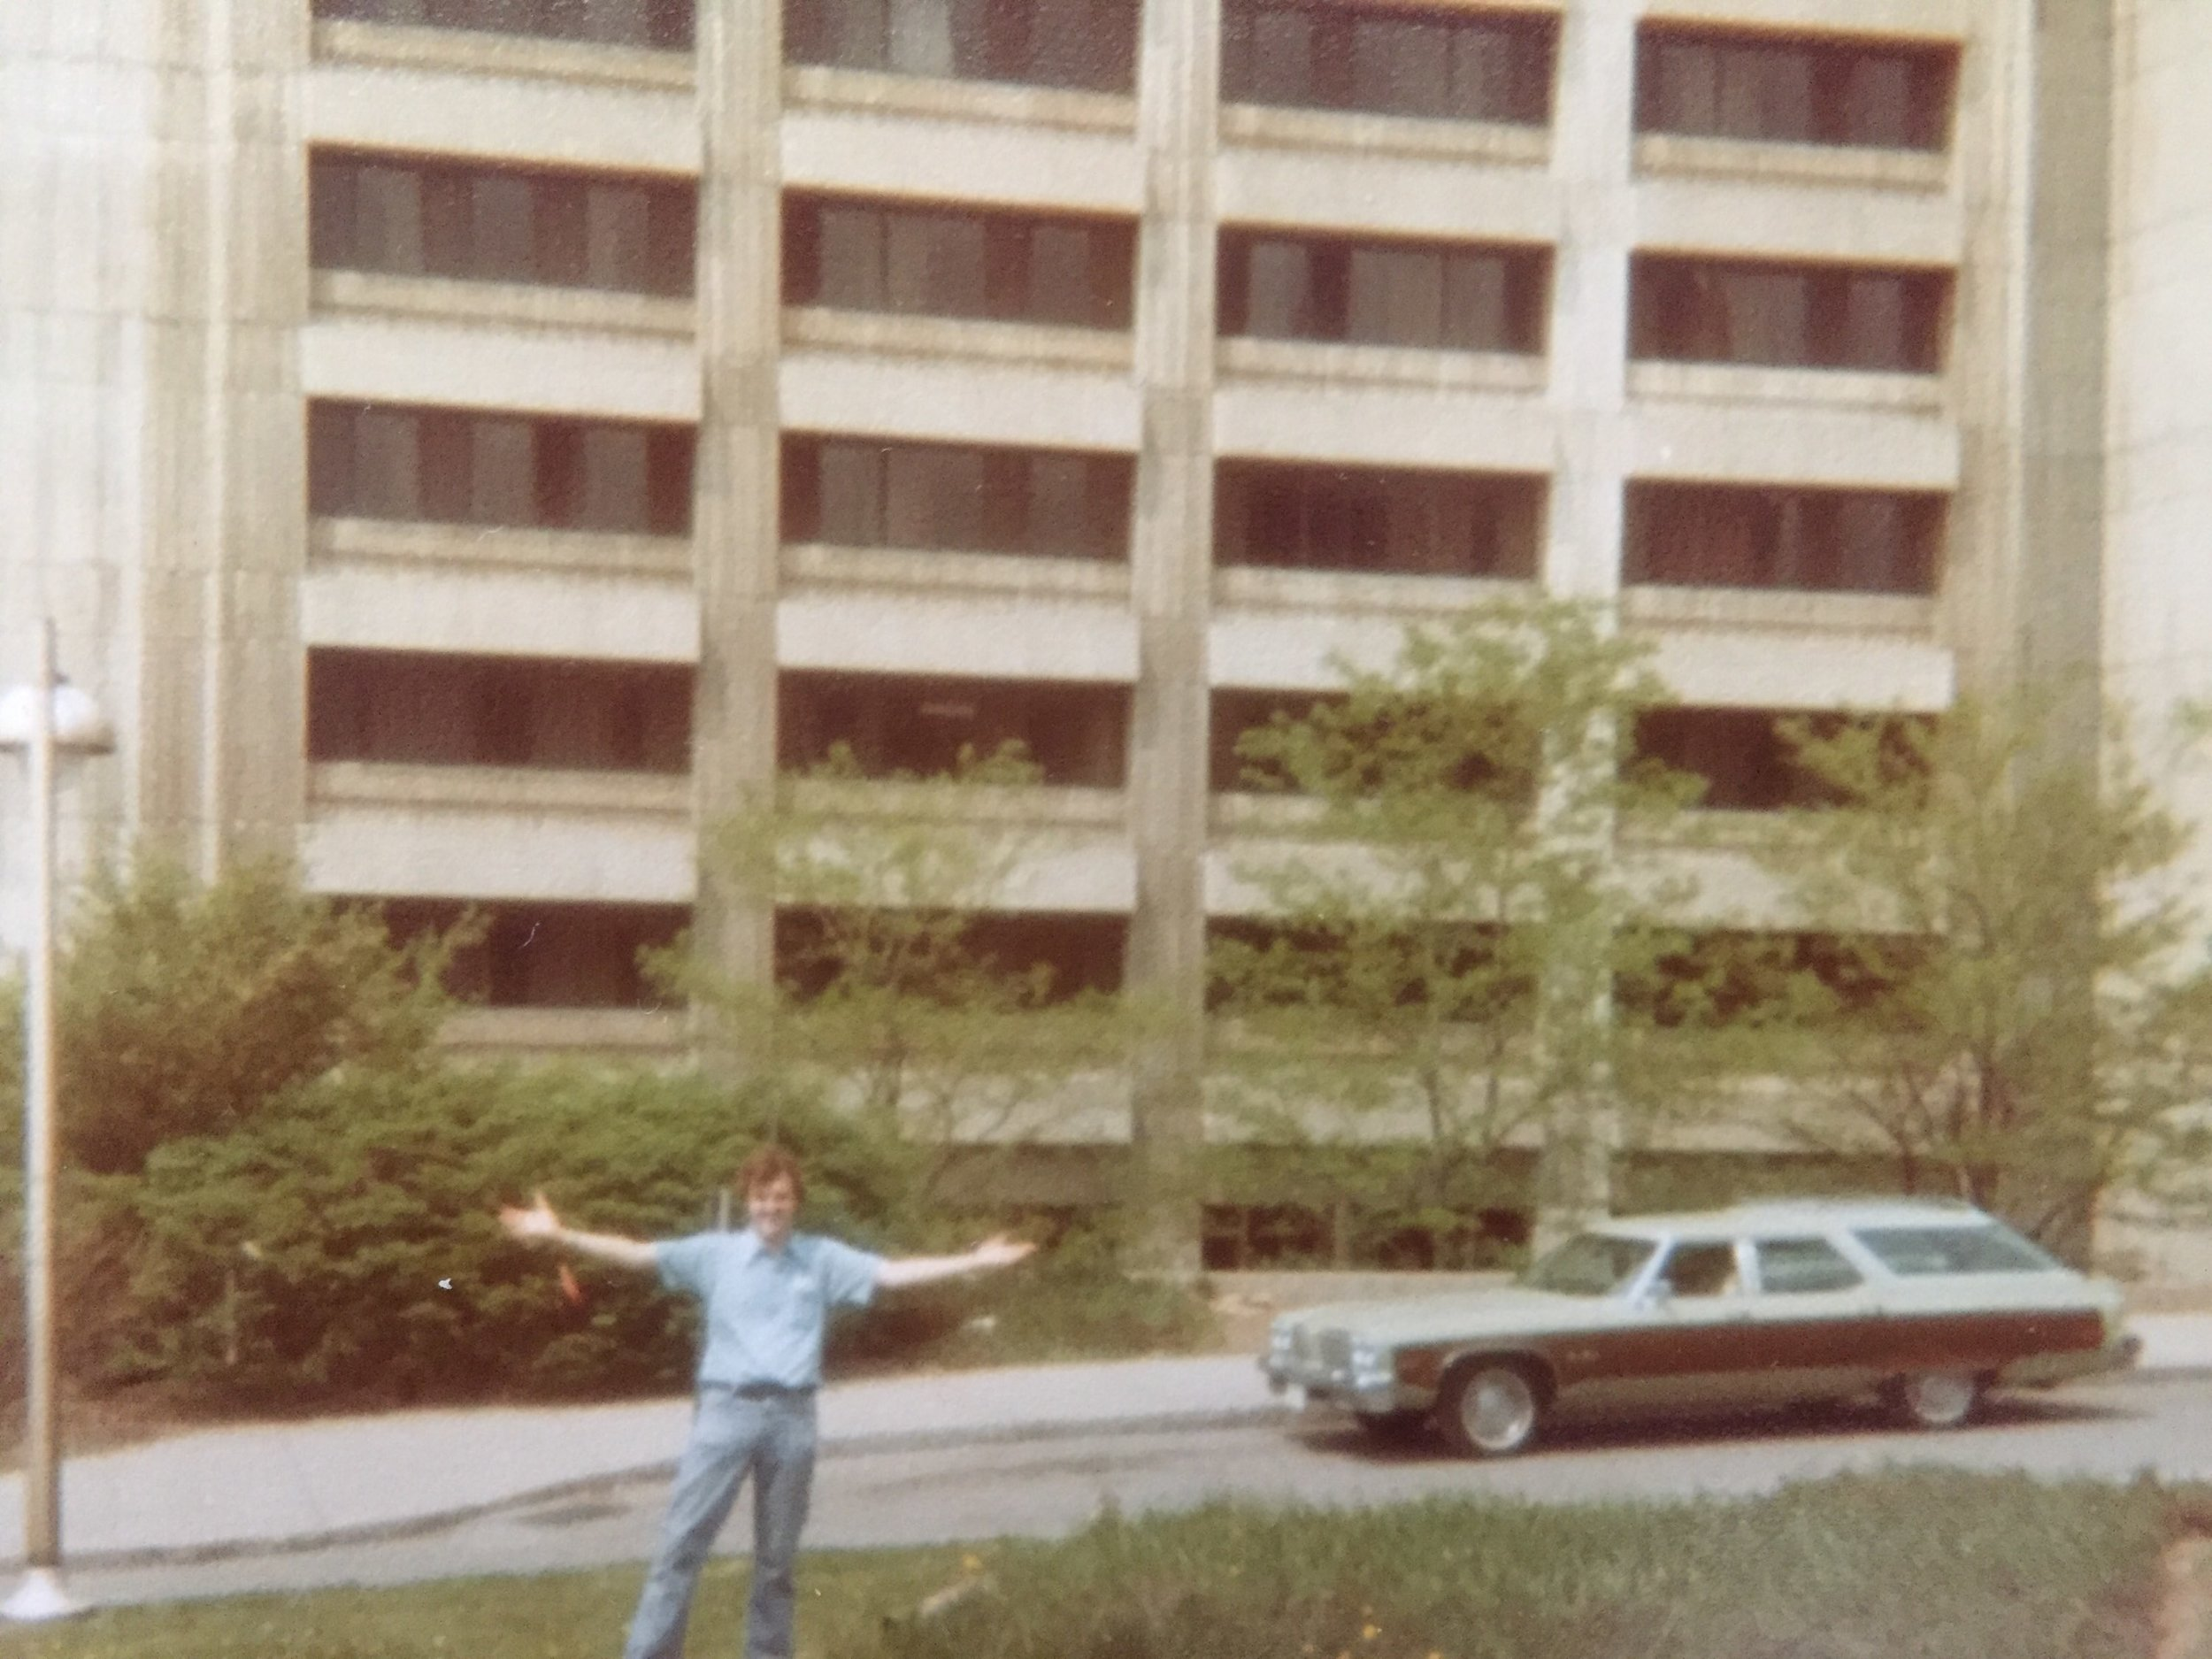 In front of the Brewster/Boland dormitory at Syracuse University in May 1979. Photo: Newvine Personal Collection